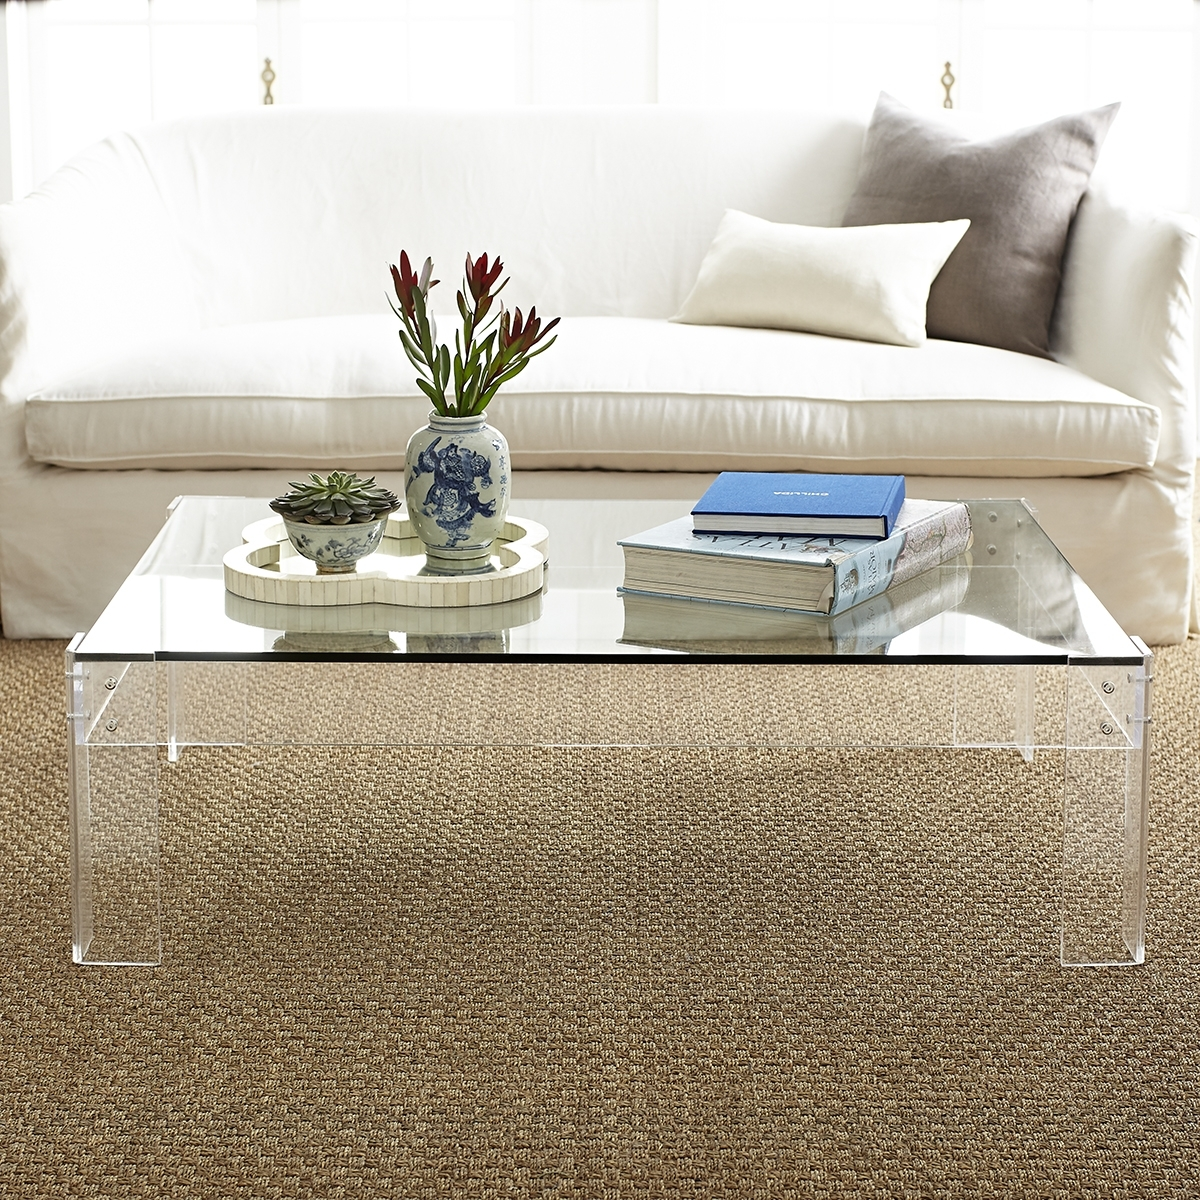 Disappearing Coffee Table | Wisteria Pertaining To Stately Acrylic Coffee Tables (View 10 of 30)